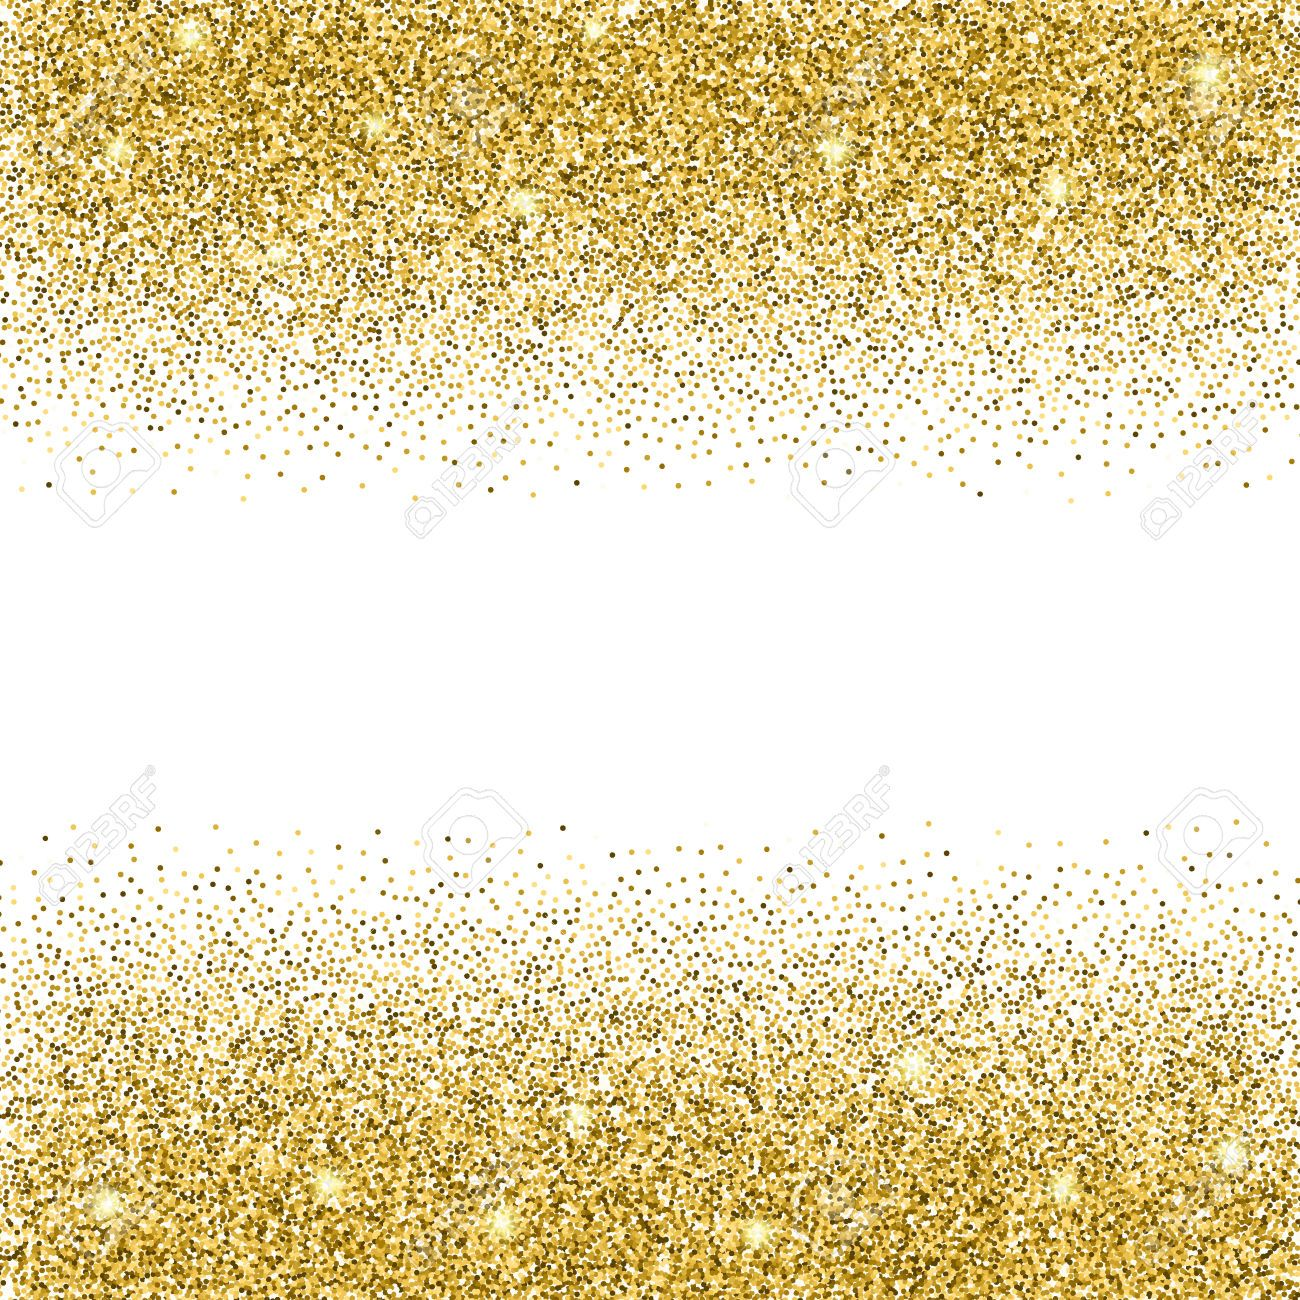 Glitter Gold: 50537981-Gold-glitter-background-Gold-sparkles-on-white